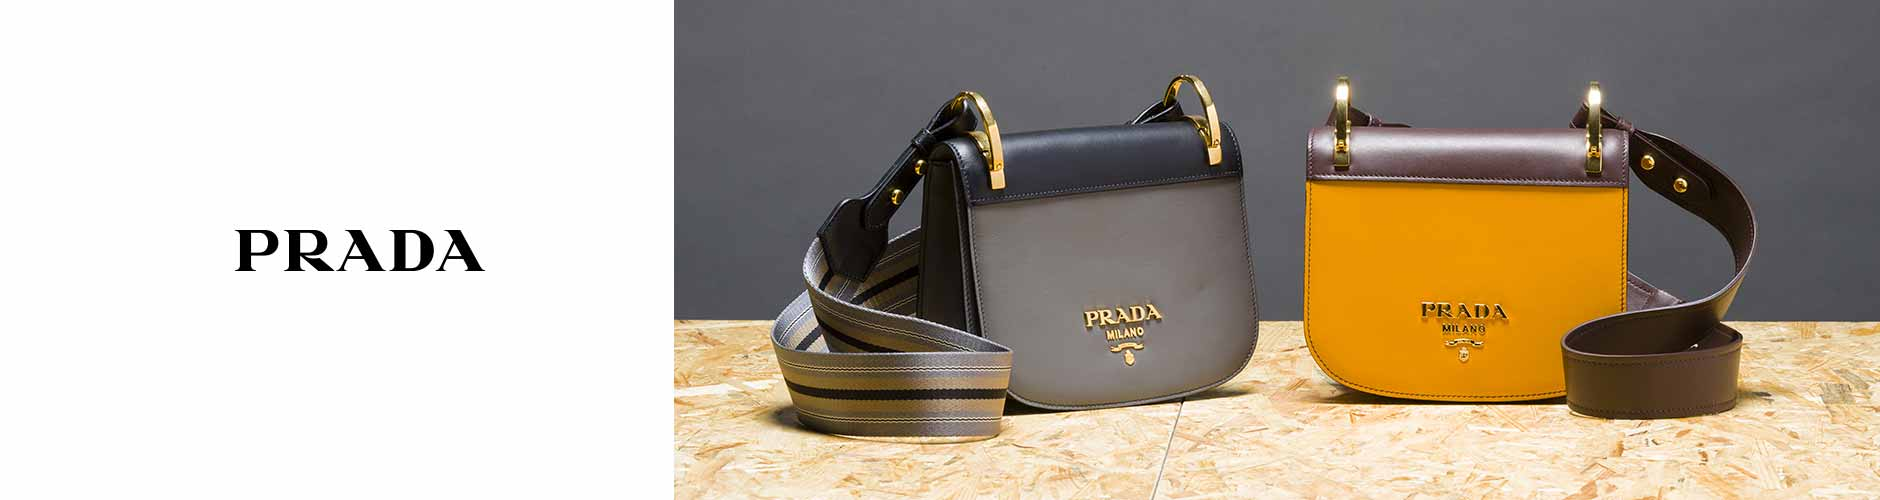 prada flower bag price